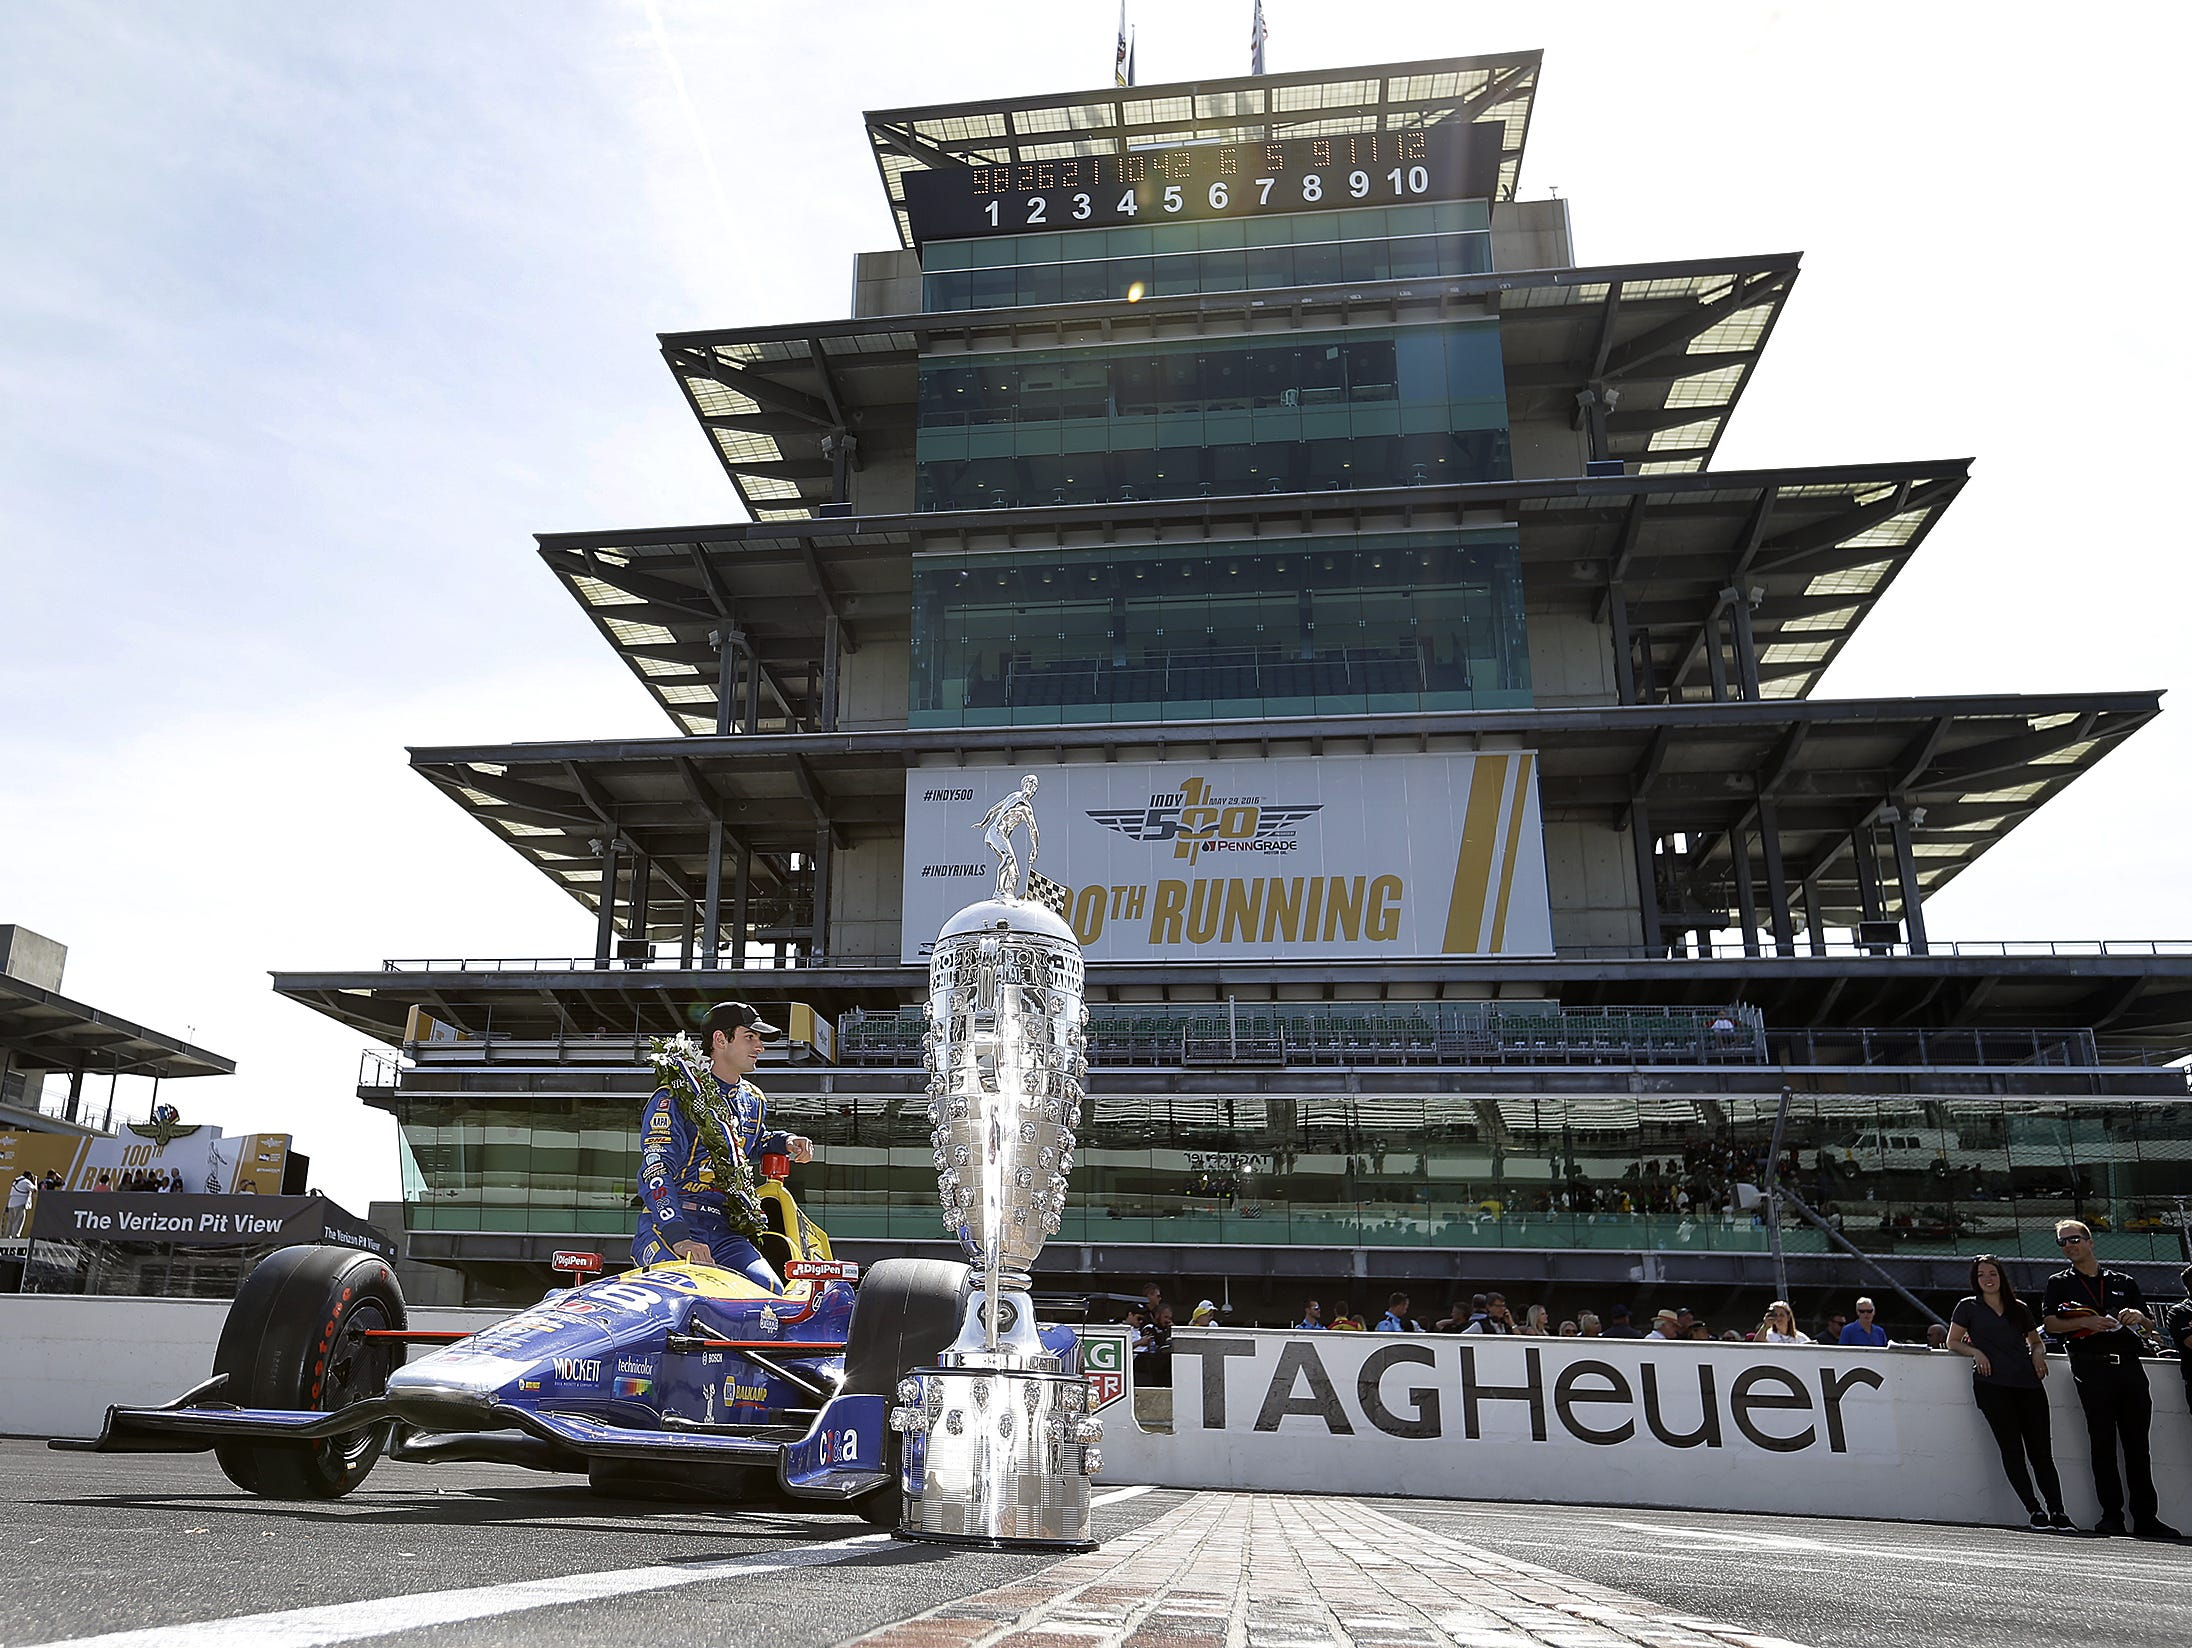 IndyCar driver Alexander Rossi (98) poses for photos following his win in the 100th running of the Indianapolis 500 Monday, May 30, 2016, morning at the Indianapolis Motor Speedway.